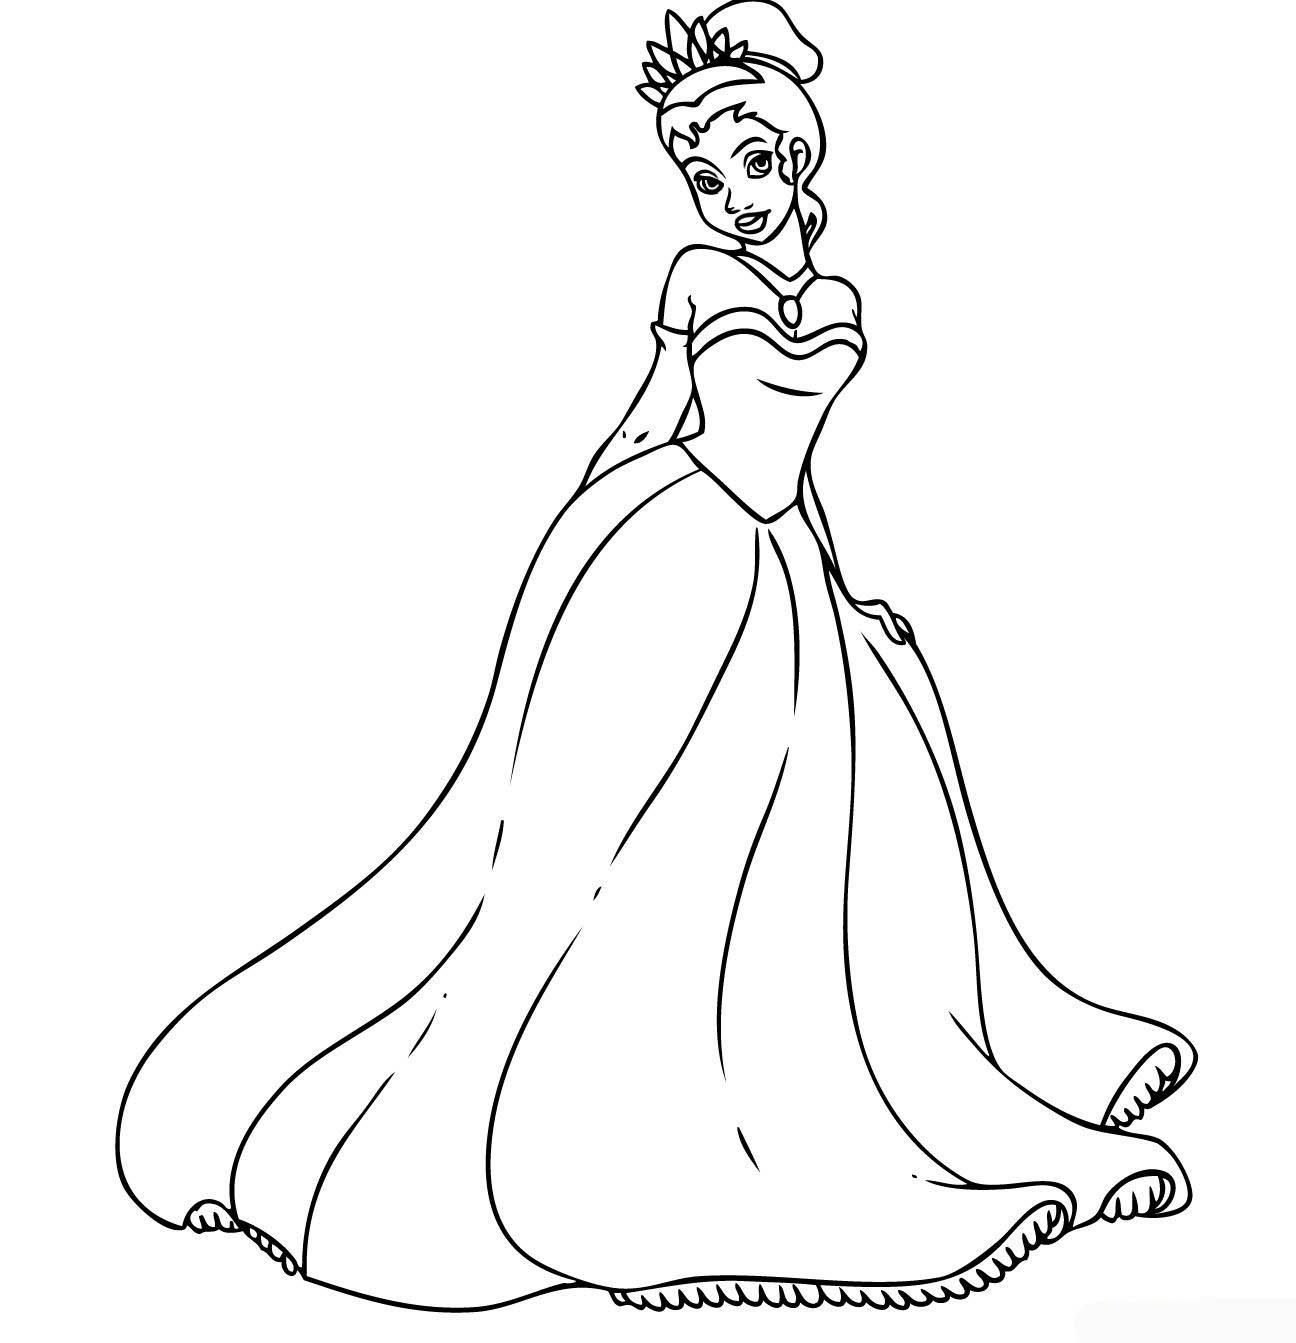 Princess Coloring Pages Best Coloring Pages For Kids Disney Princess Coloring Pages Princess Coloring Pages Disney Coloring Pages